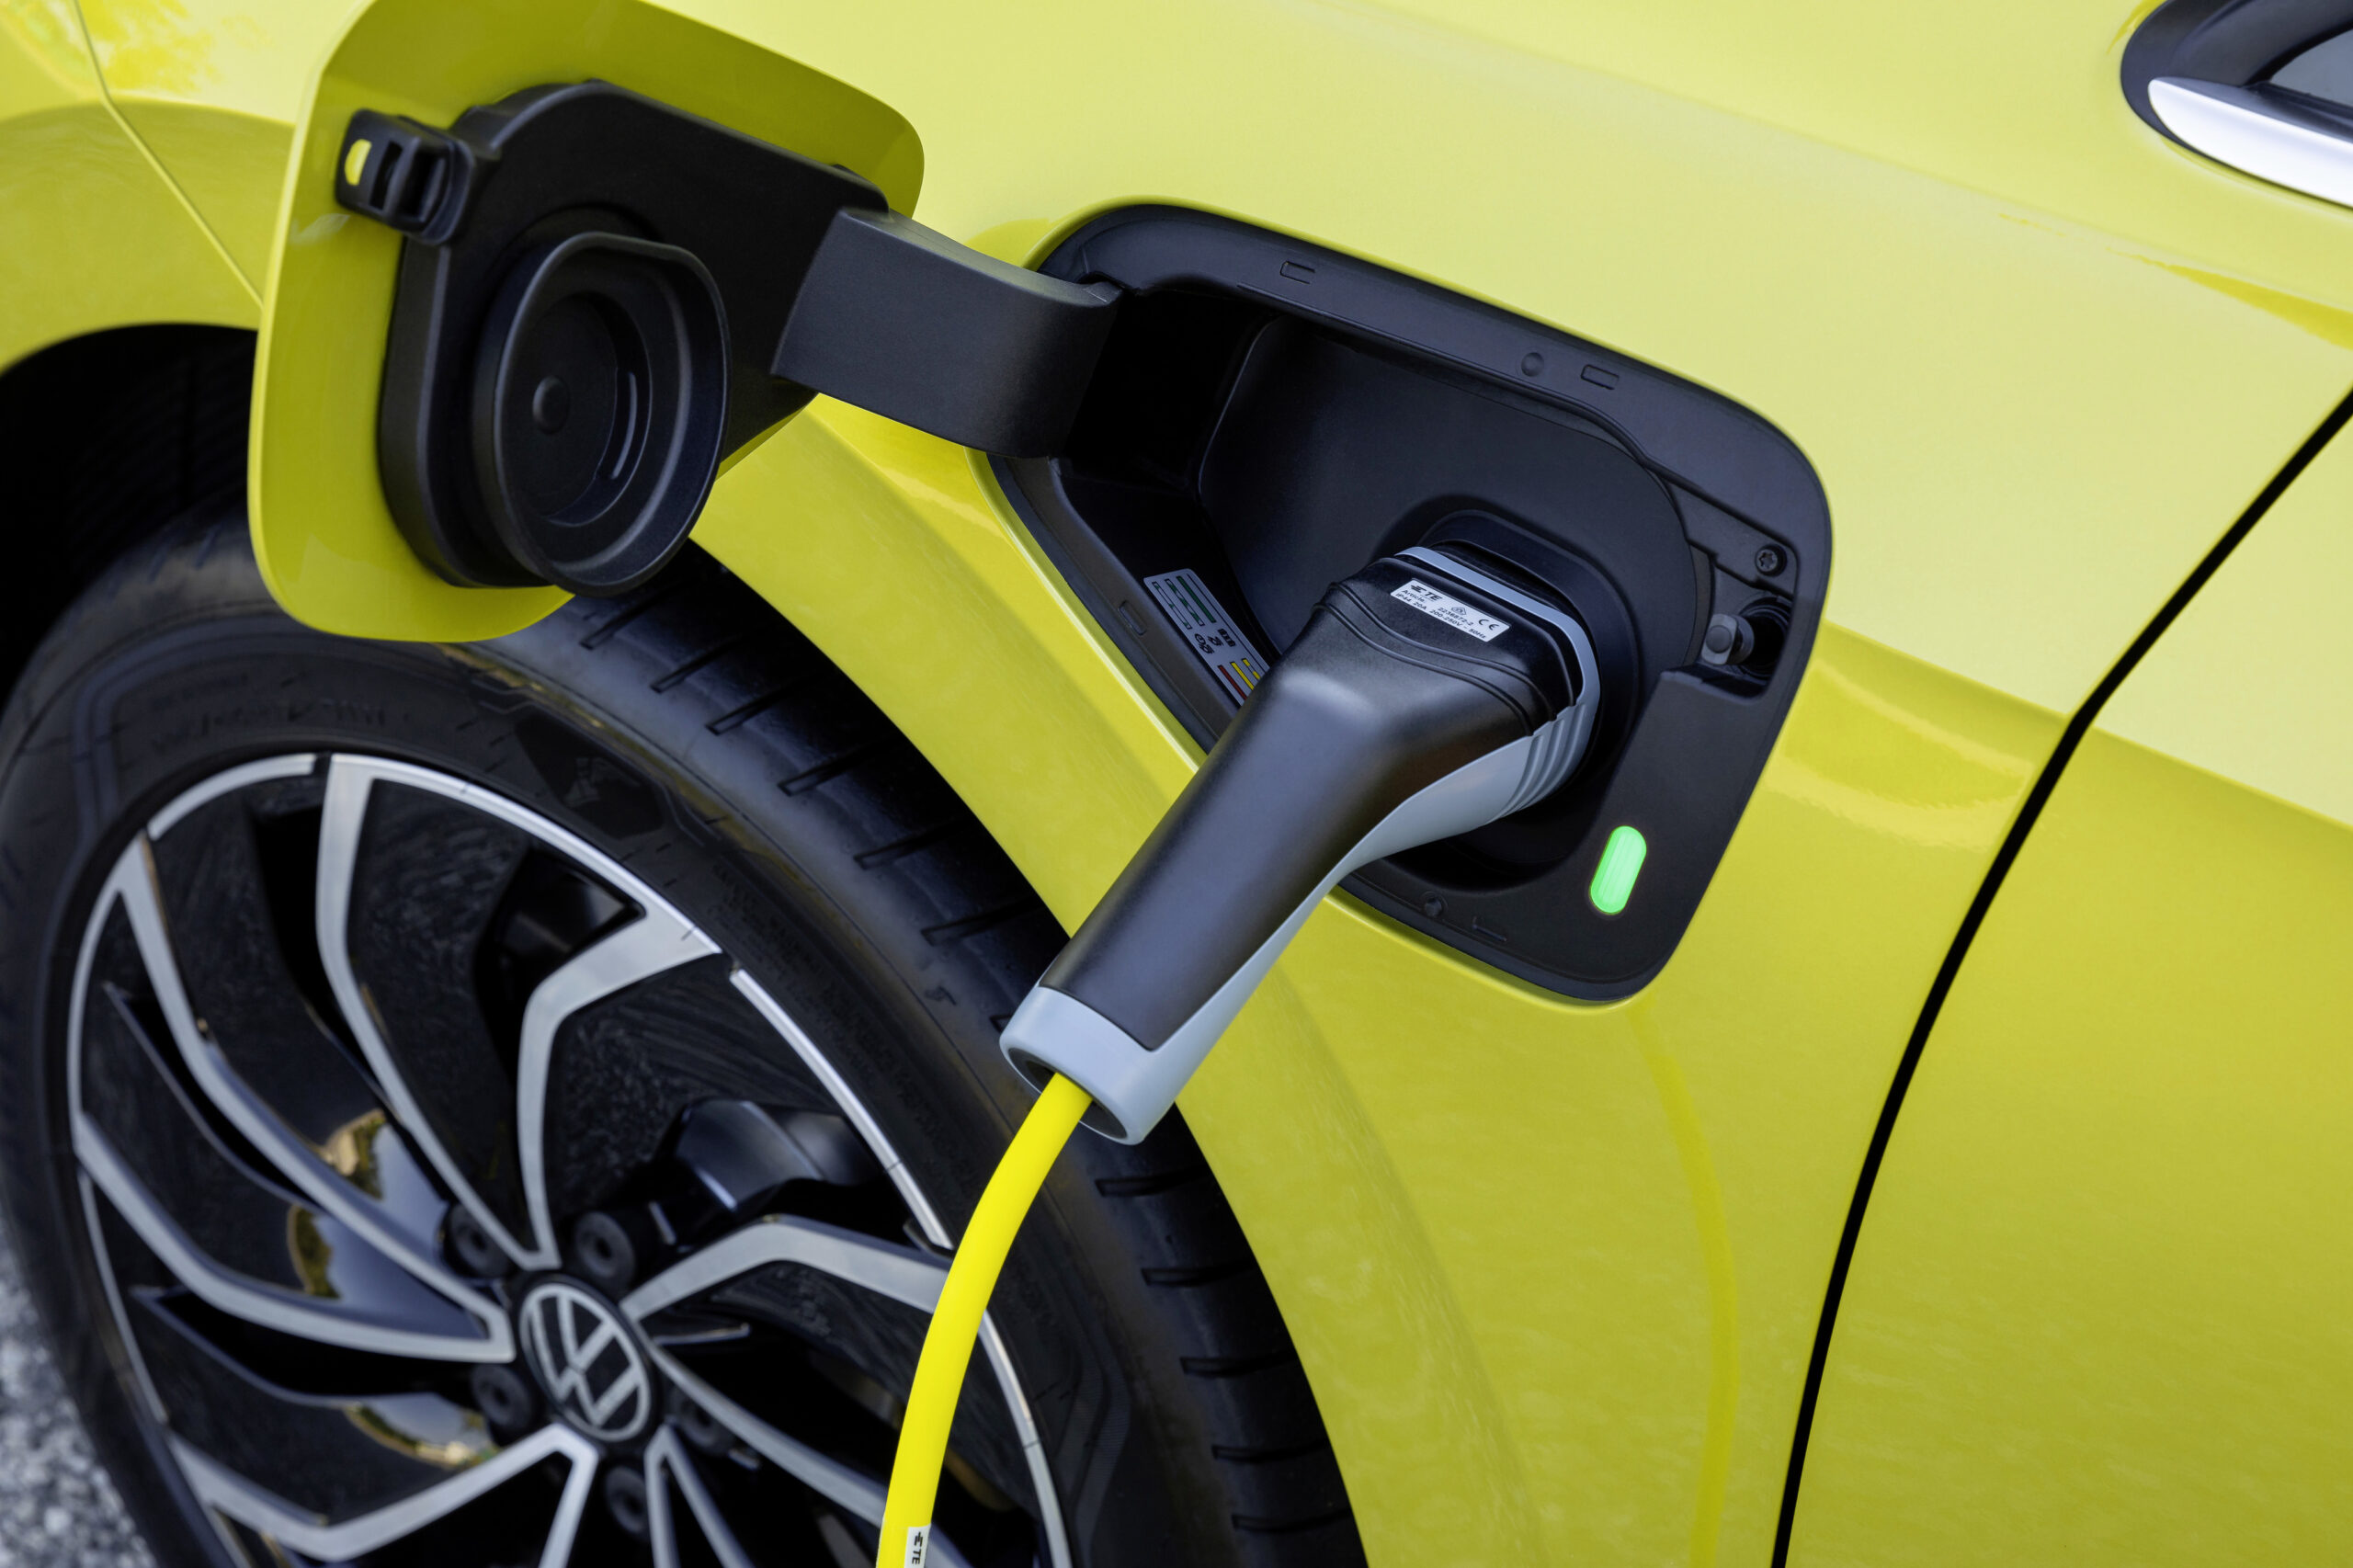 Volkswagen e-Golf 35kWh, Anthony - Living with an EV: Home charging